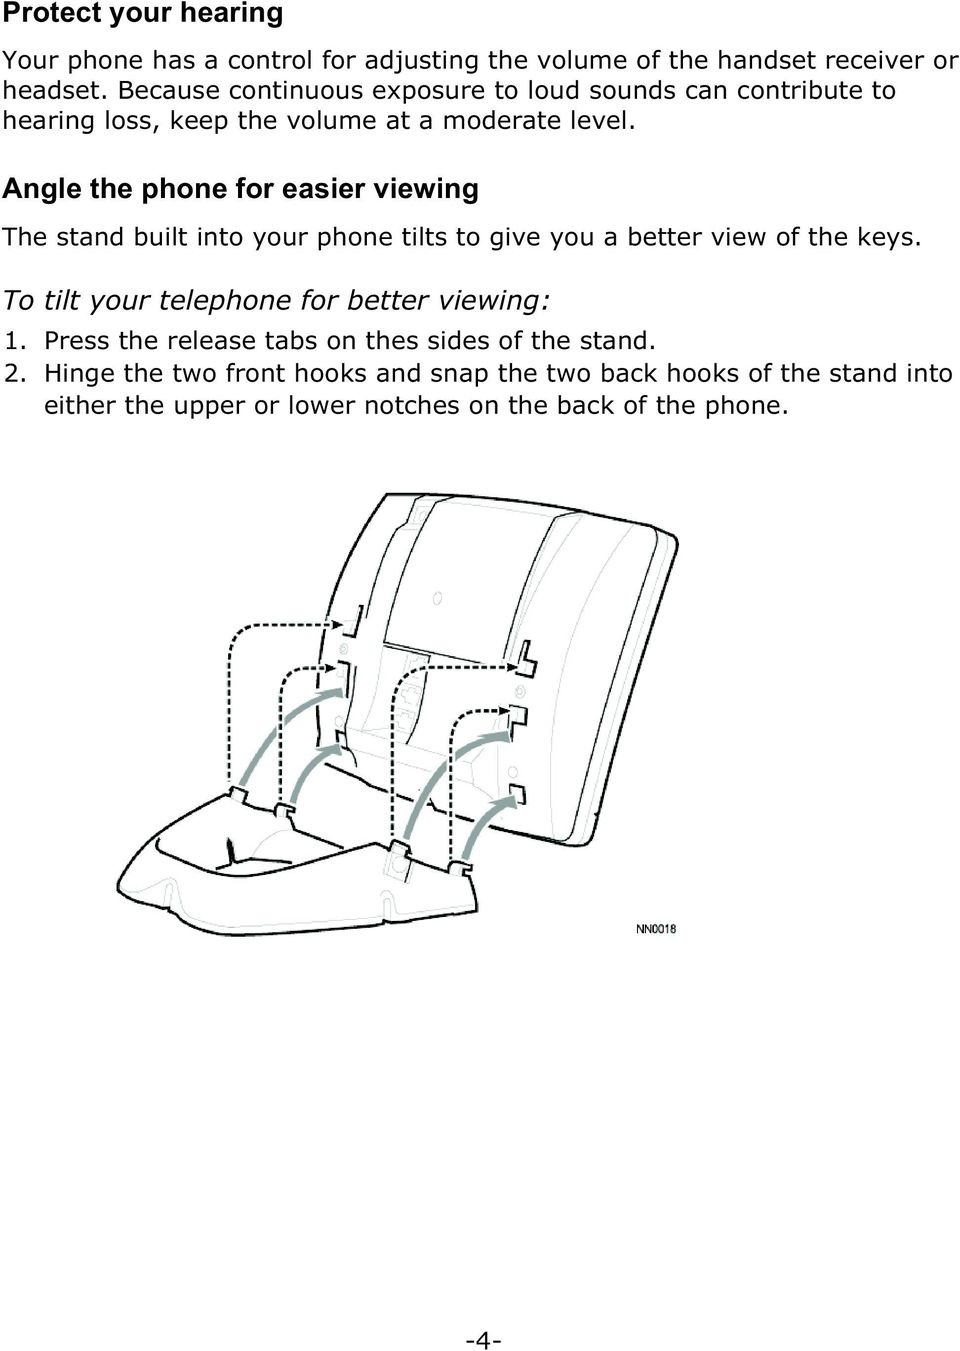 Angle the phone for easier viewing The stand built into your phone tilts to give you a better view of the keys.